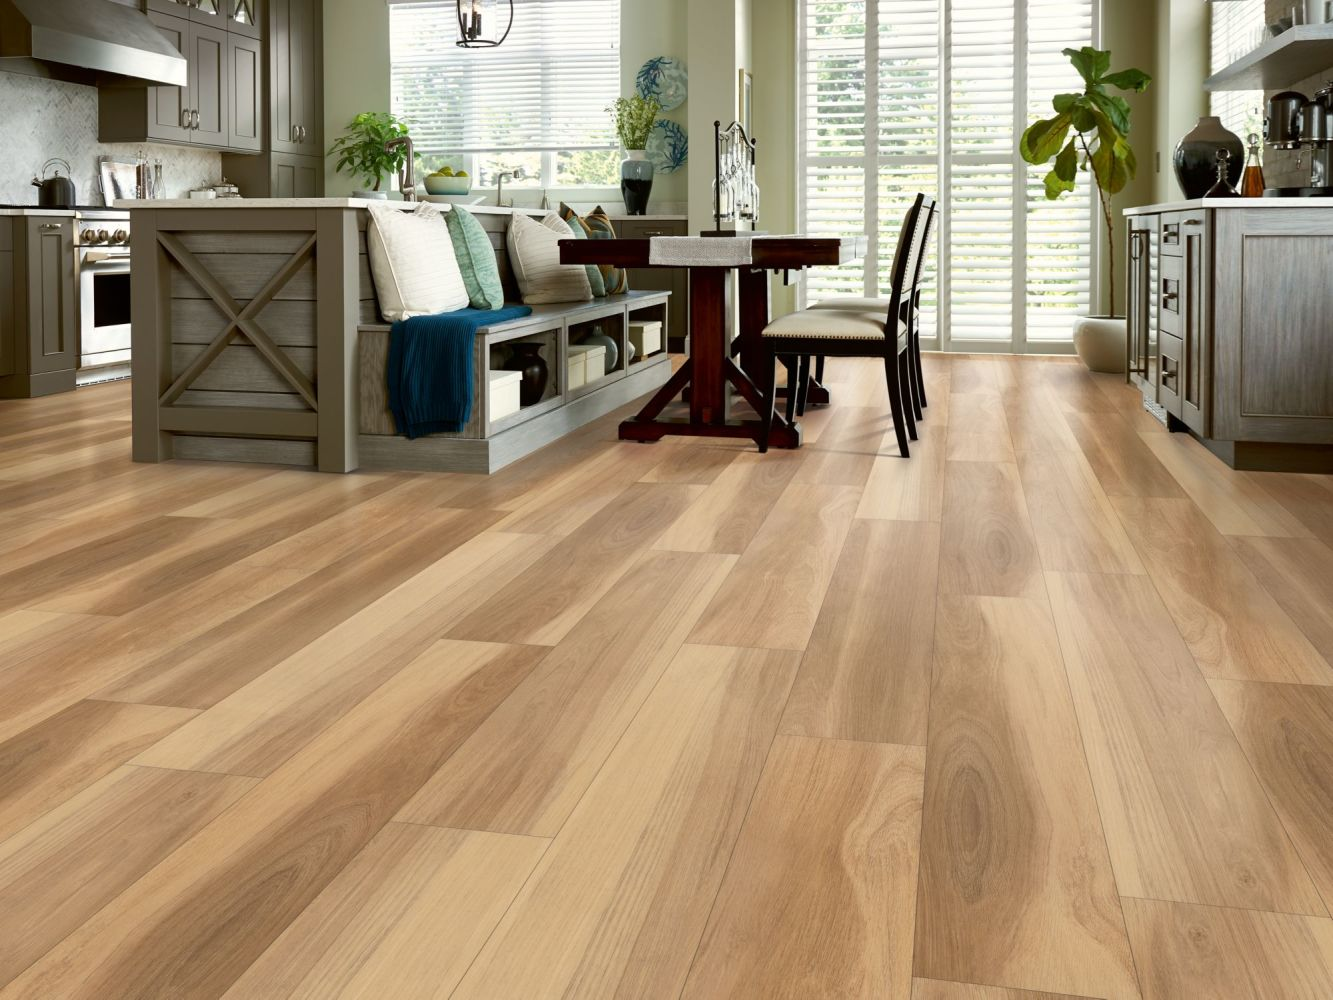 Shaw Floors Resilient Residential Intrepid HD Plus Khaki Oak 00699_2024V